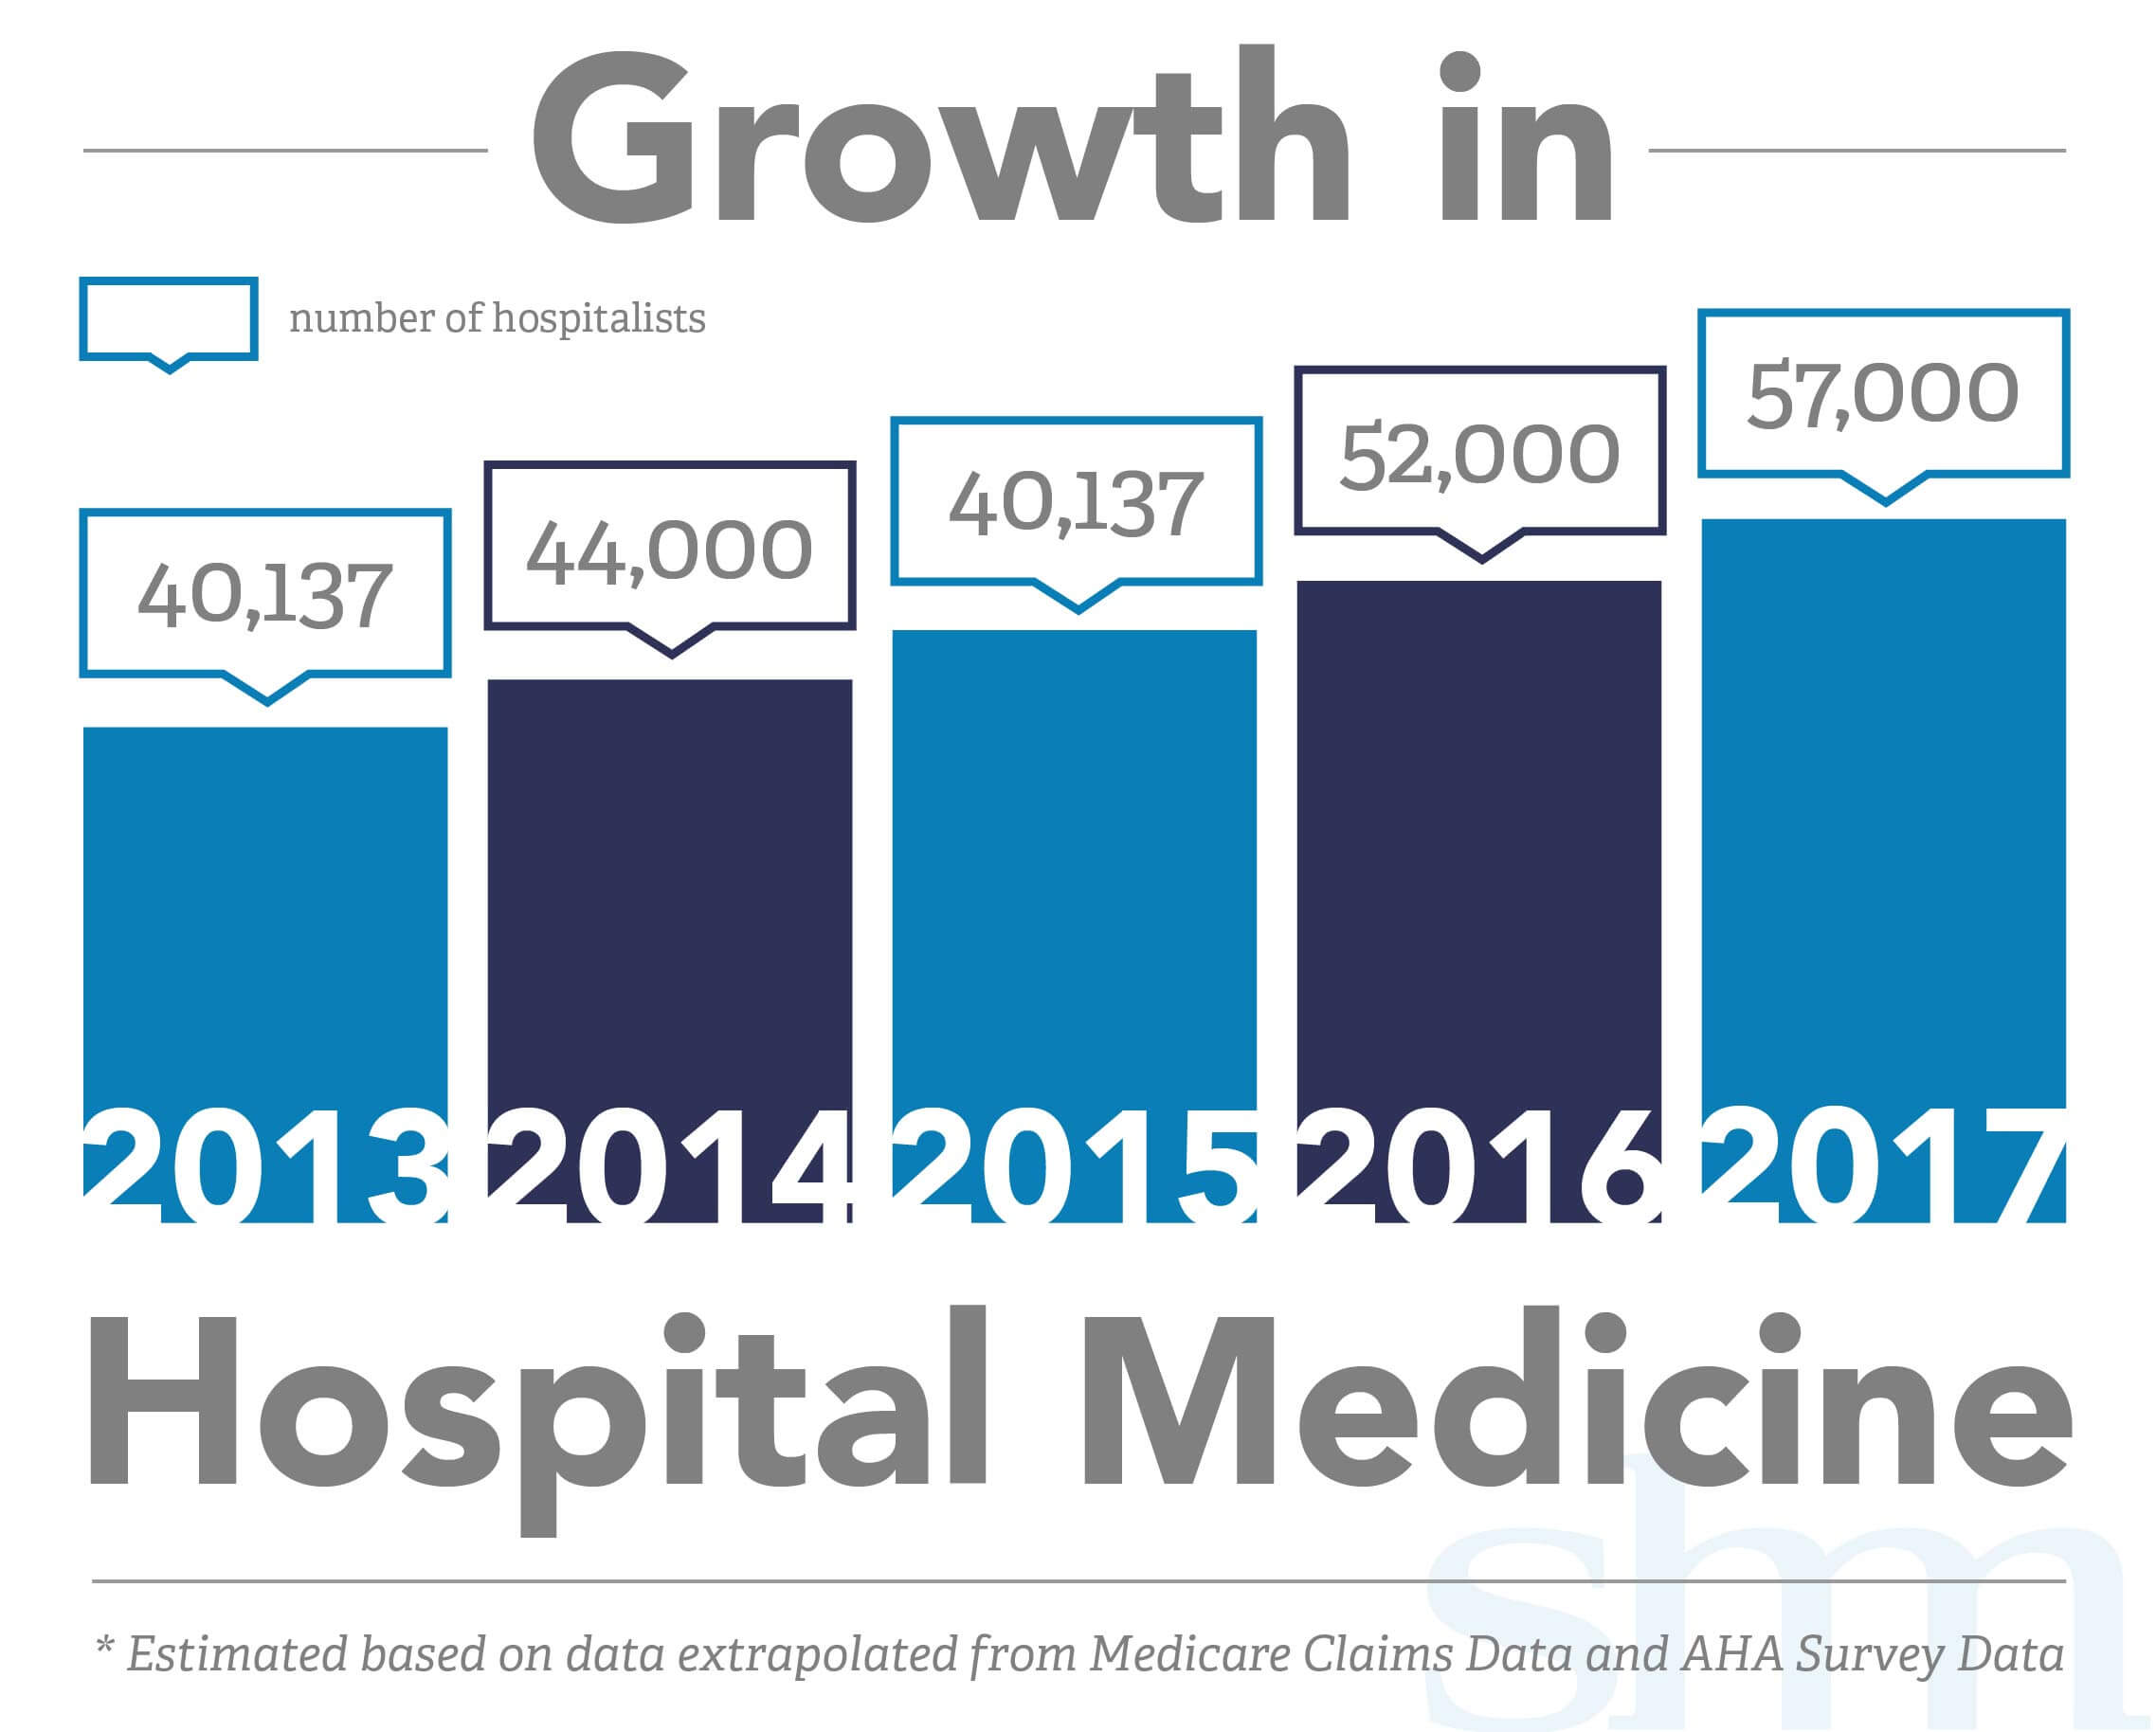 Growth in Hospital Medicine Chart